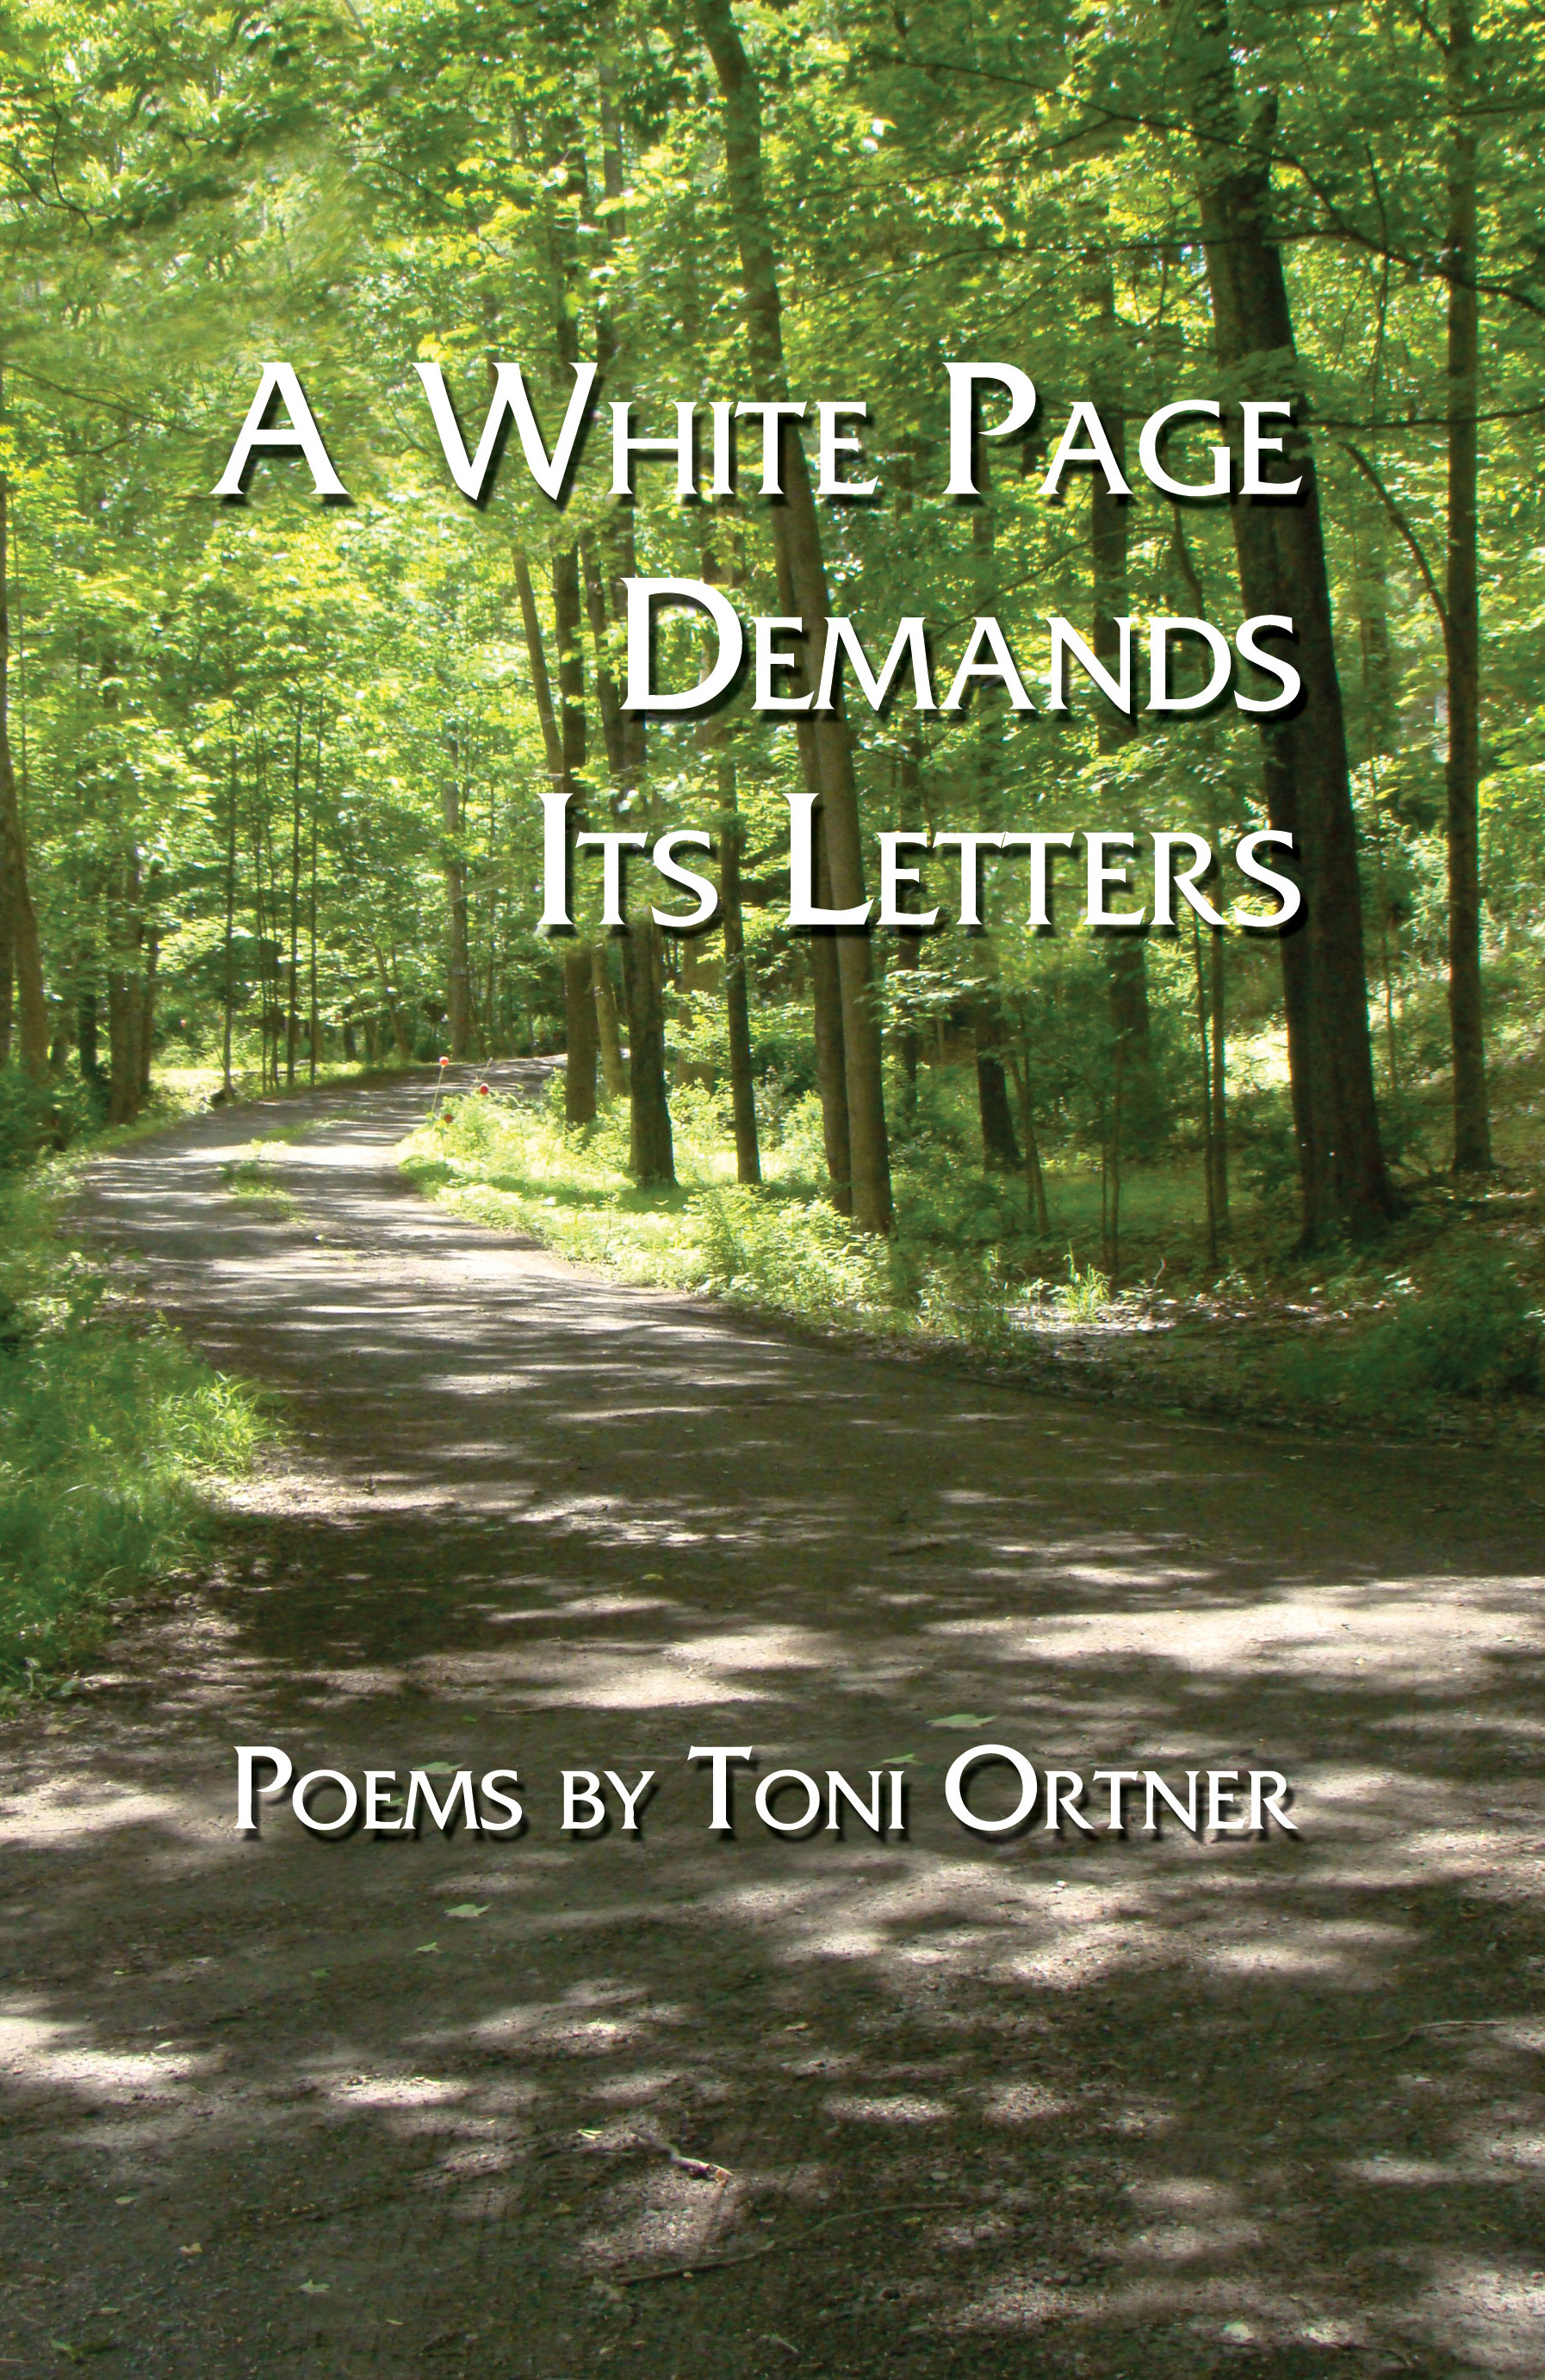 A White Page Demands Its Letters